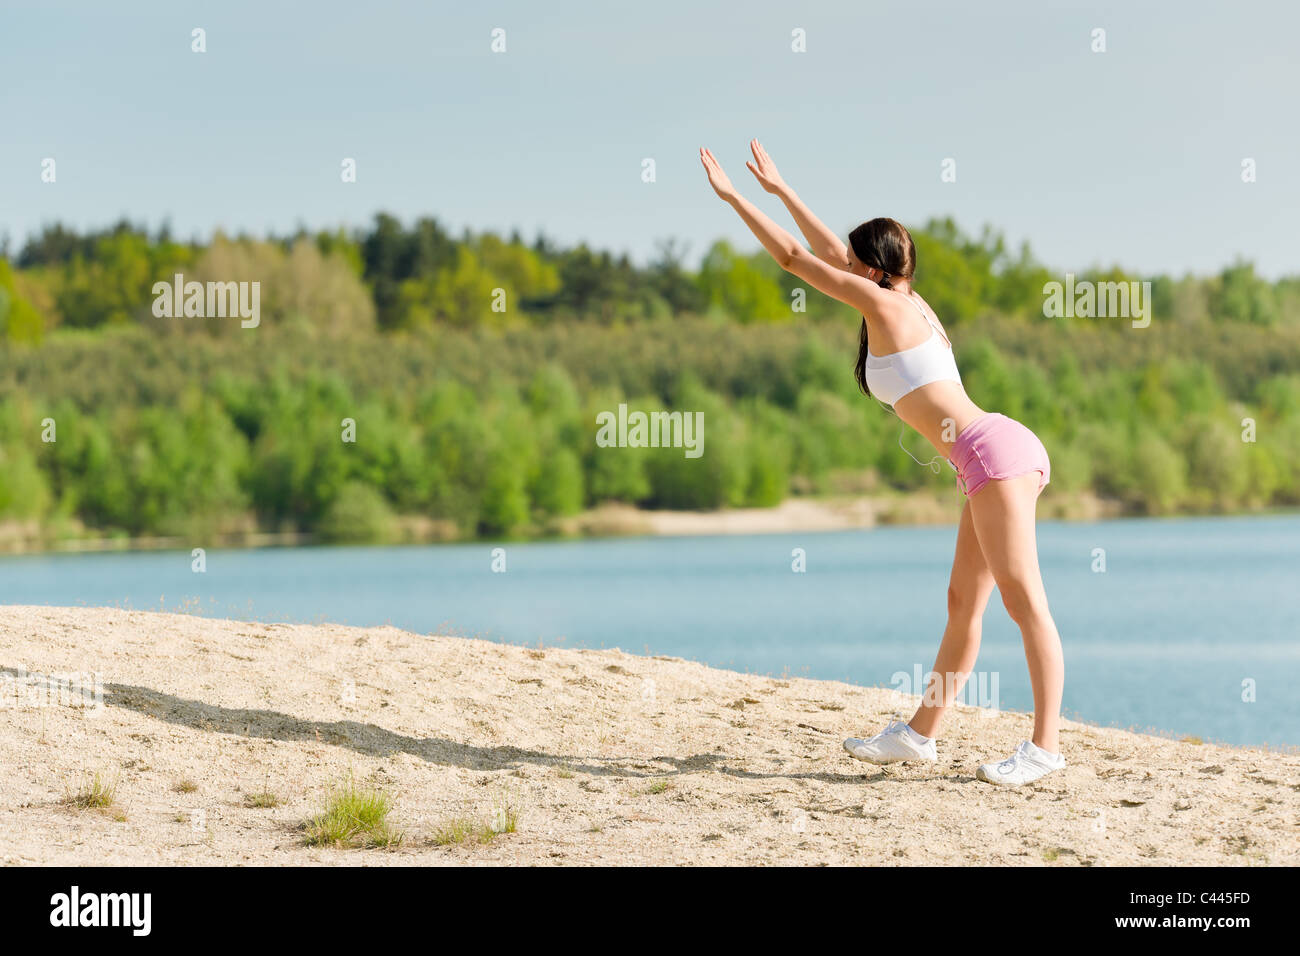 Summer active woman stretching on beach in fitness outfit Stock Photo